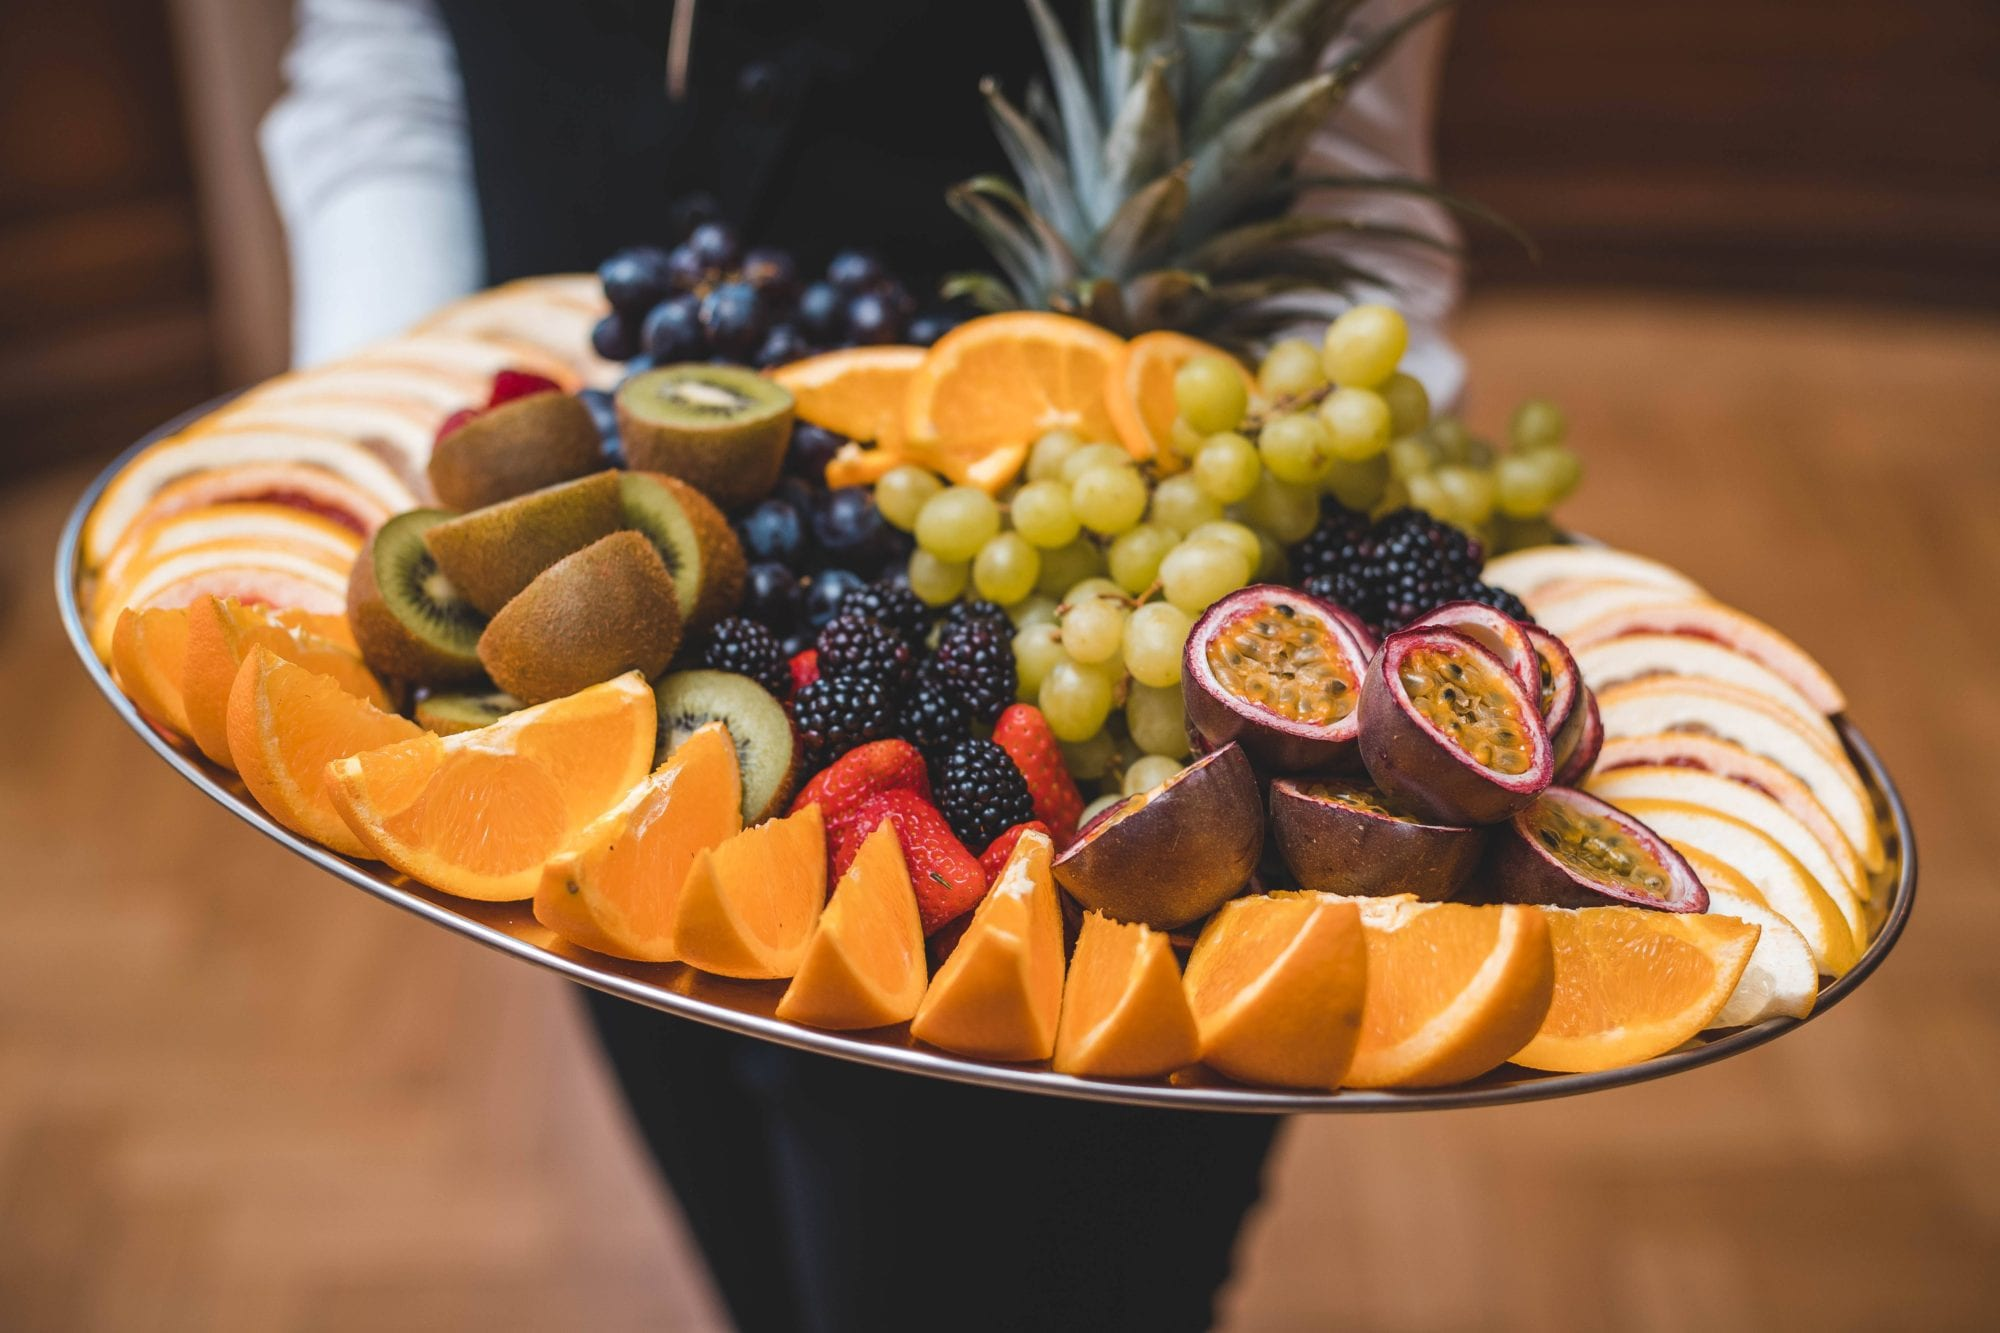 The Grand Wedding Fruit Platter